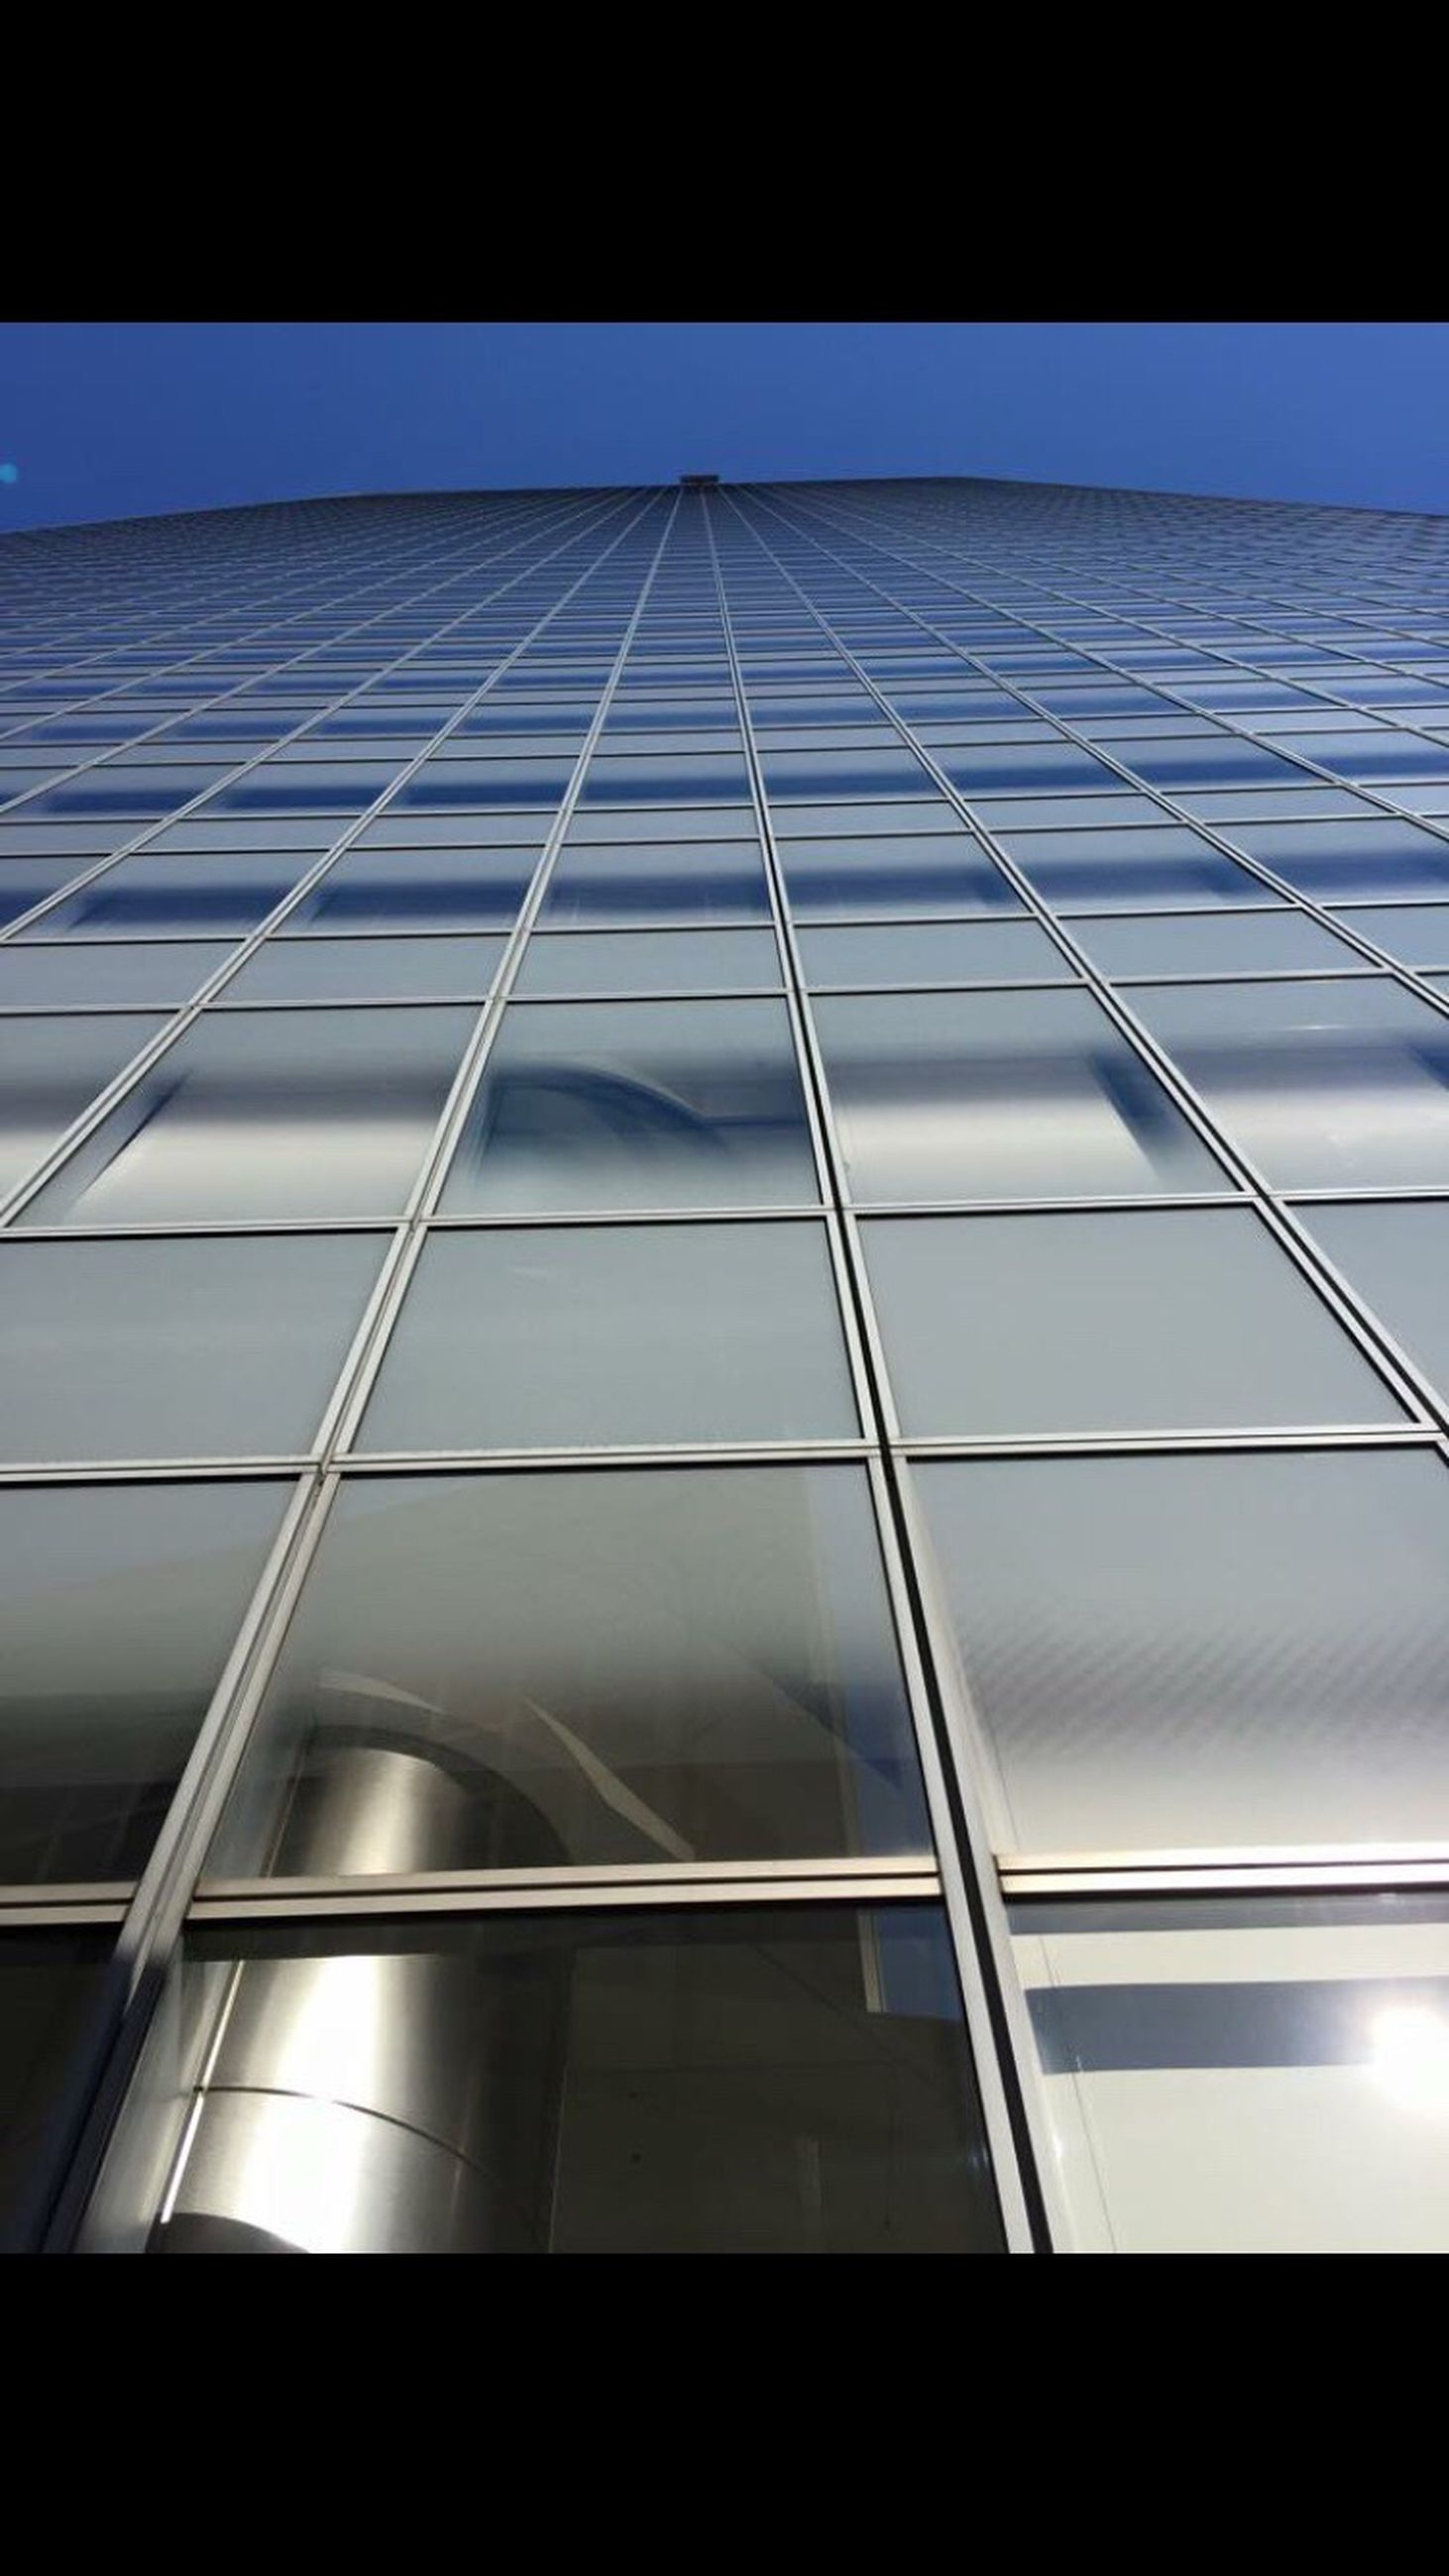 architecture, built structure, low angle view, building exterior, modern, glass - material, window, office building, building, city, reflection, skyscraper, glass, tall - high, sky, transparent, indoors, no people, clear sky, day